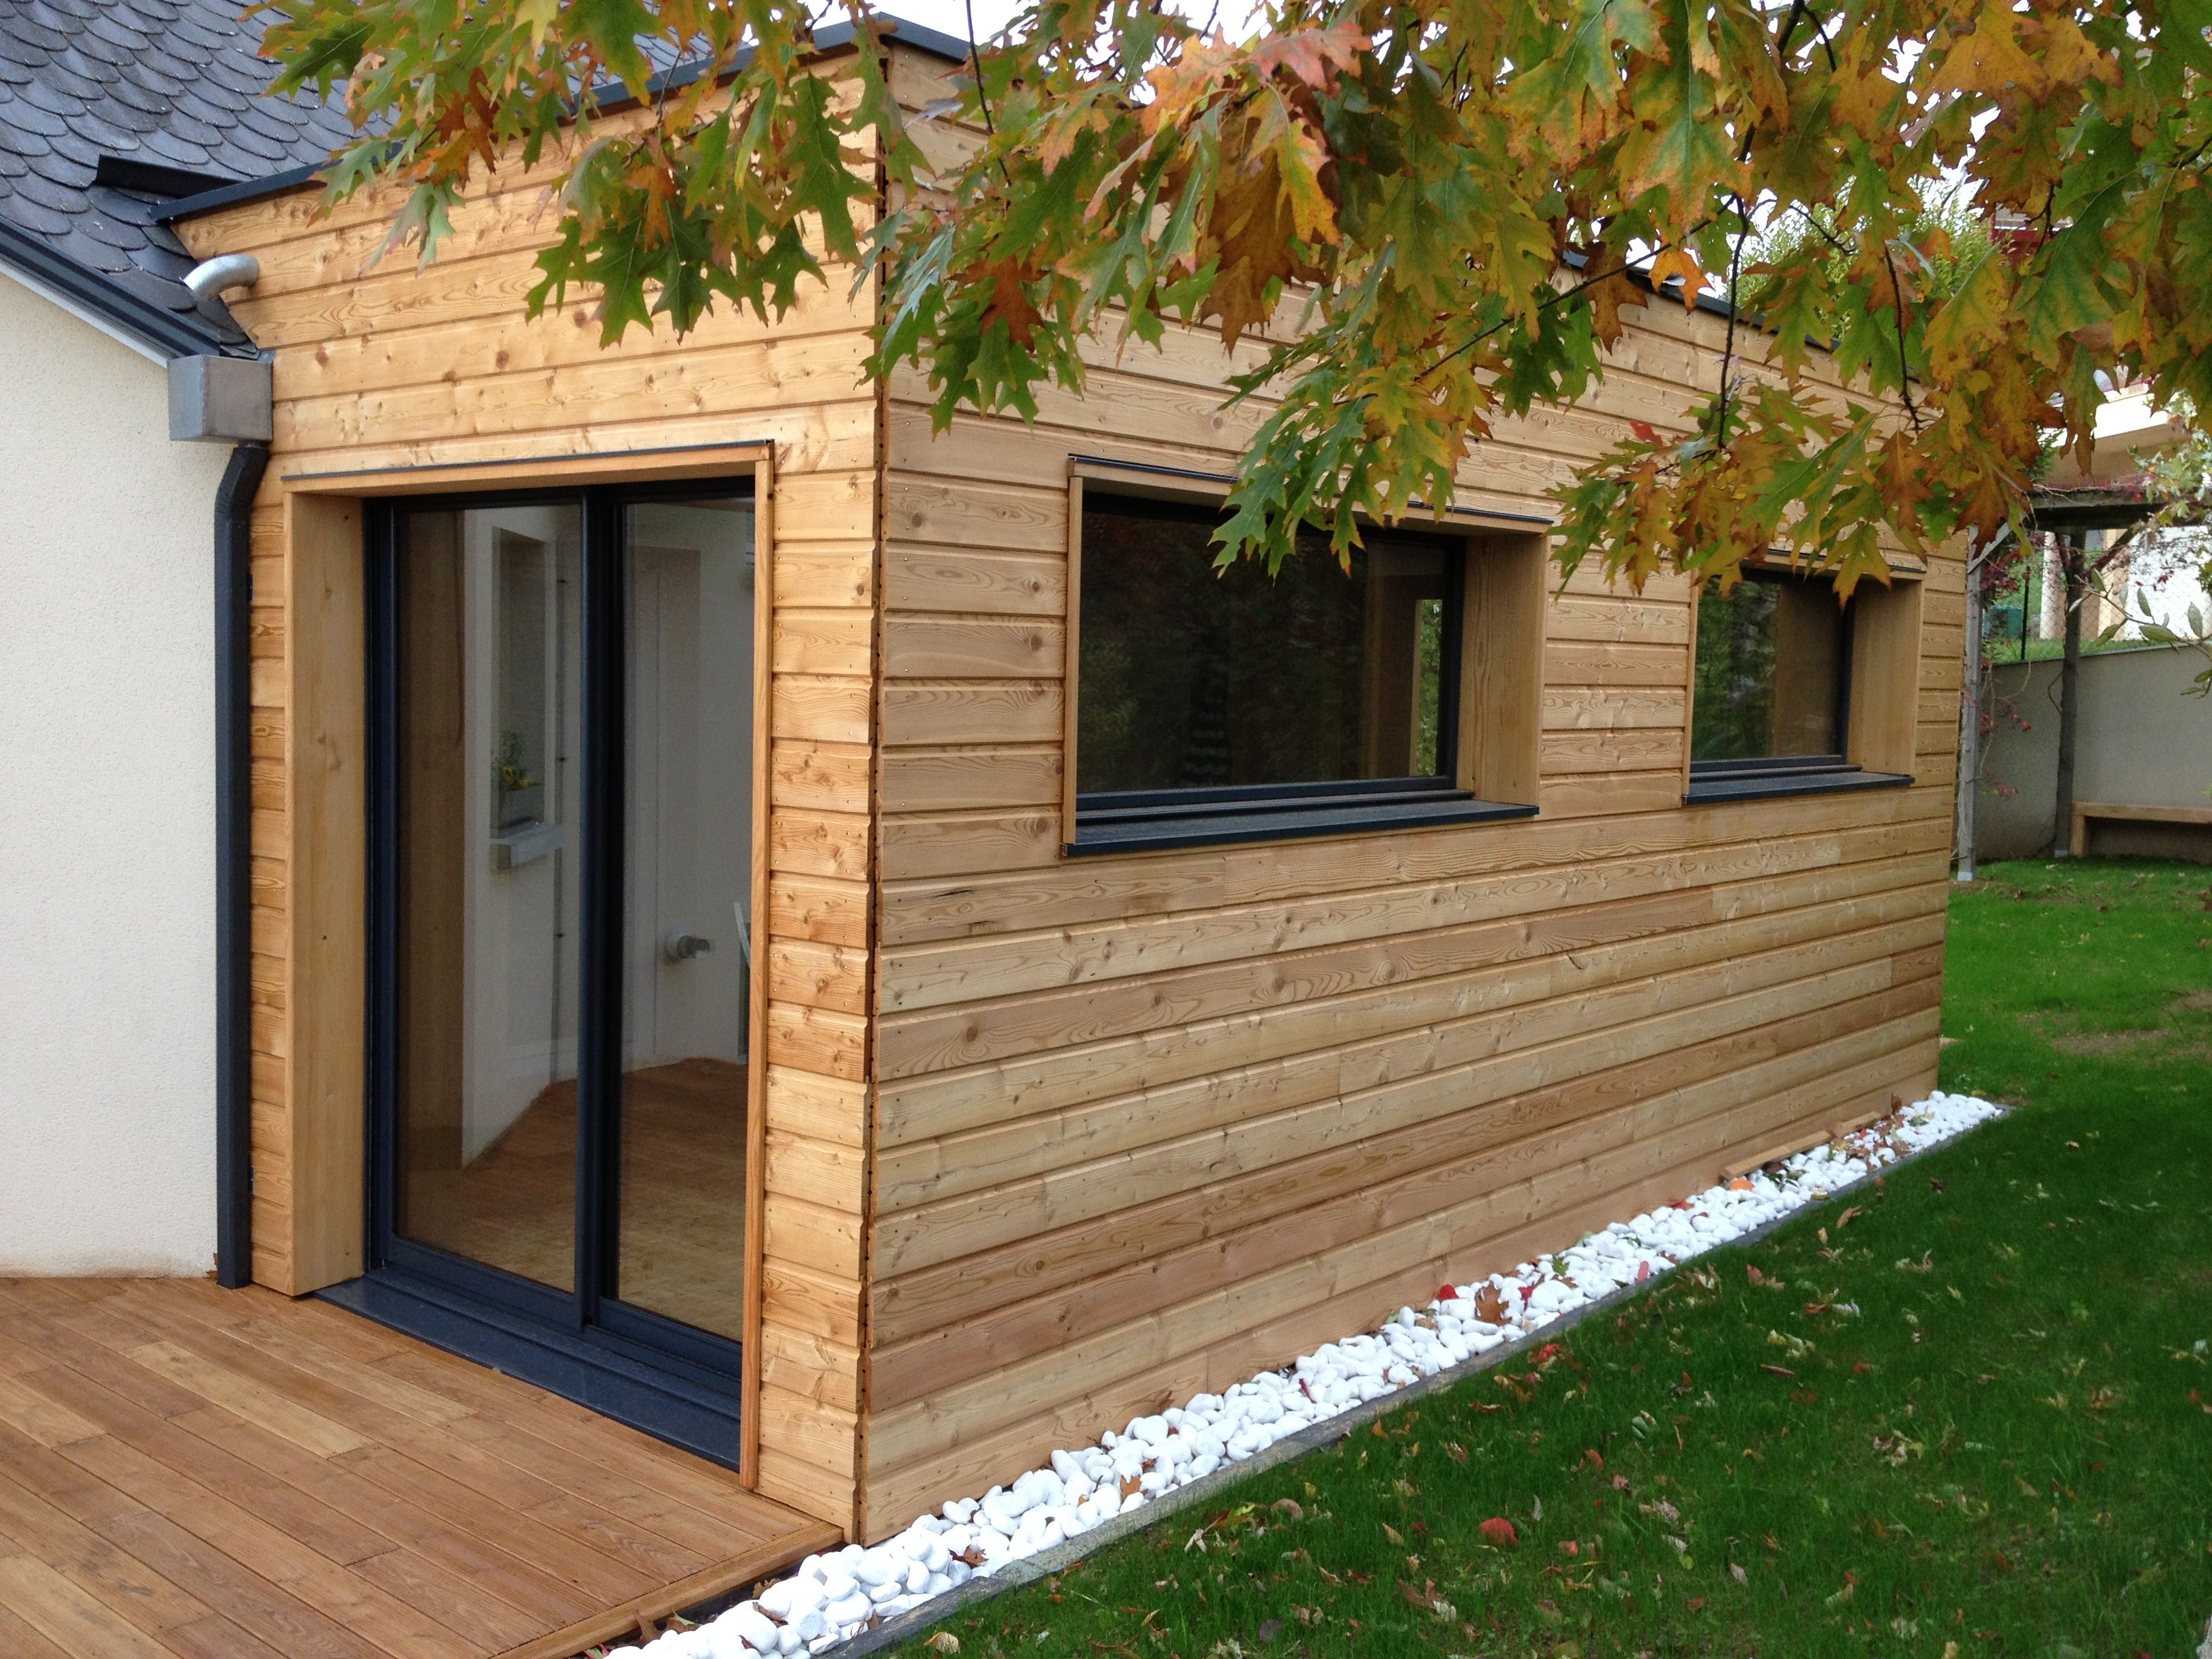 Les 25 meilleures id es de la cat gorie extension en bois for Extension maison pas chere